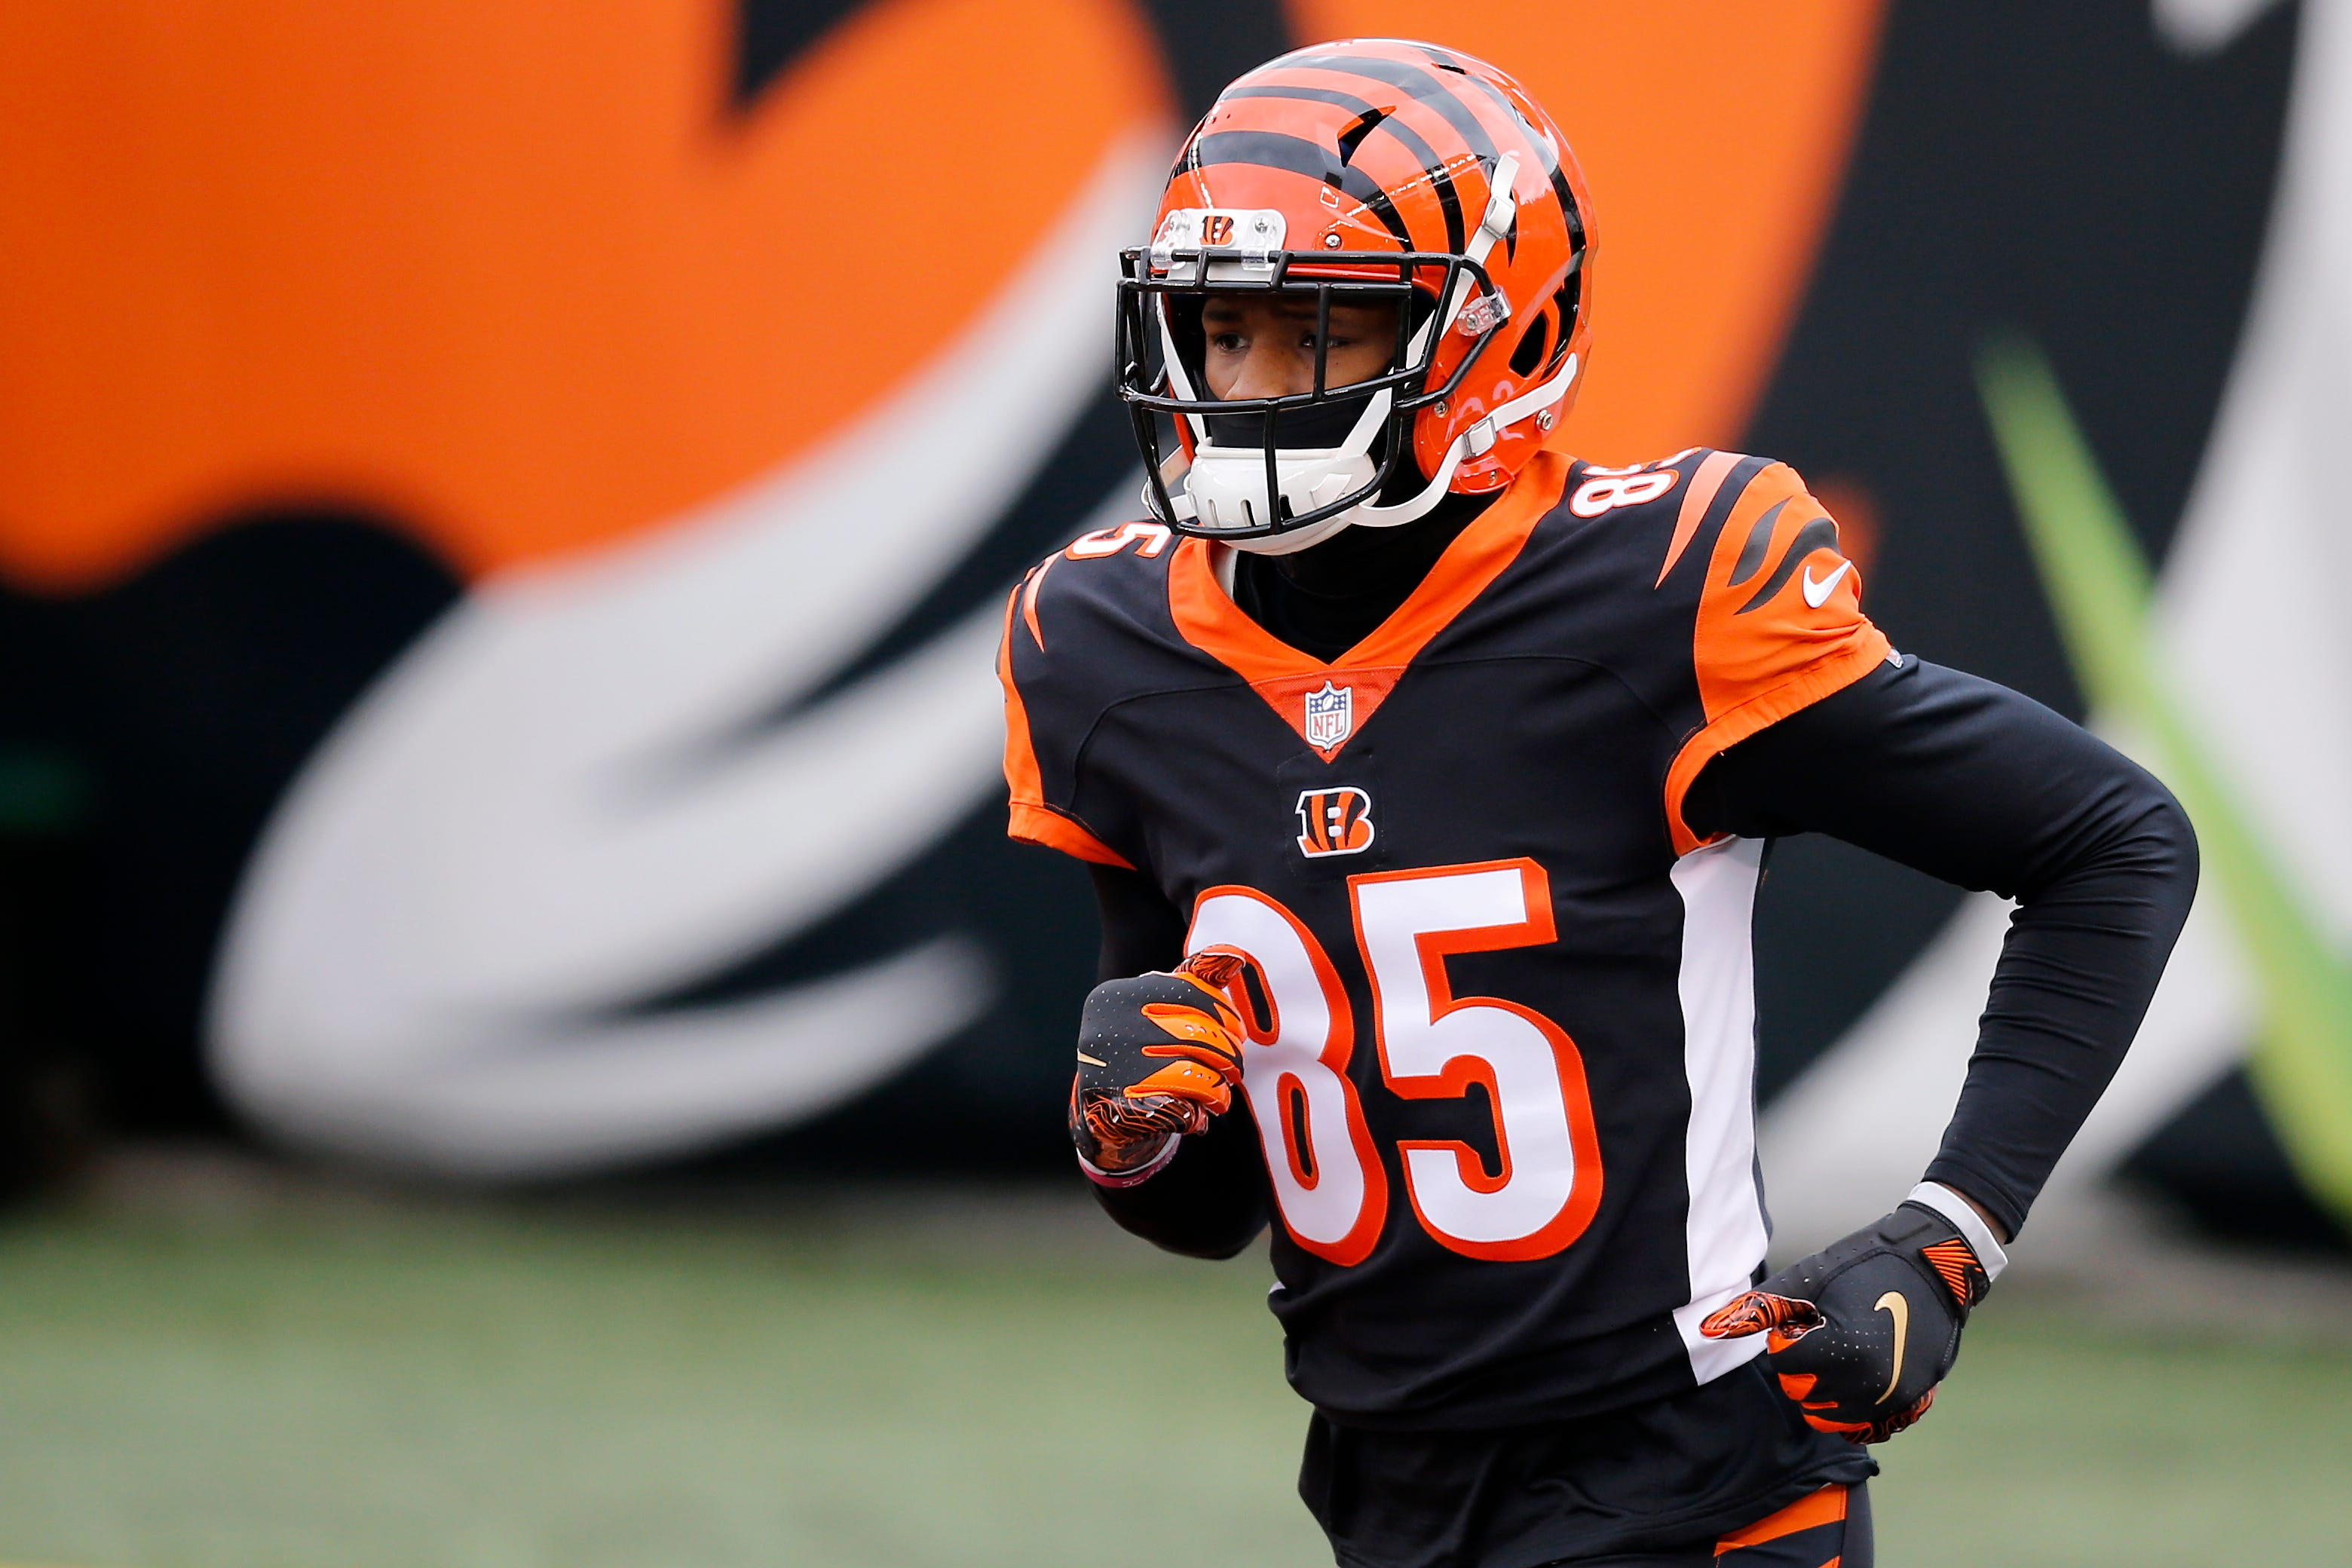 Cincinnati Bengals wide receiver Tee Higgins (85) takes the field as he's introduced before the first quarter of the NFL Week 17 game between the Cincinnati Bengals and the Baltimore Ravens at Paul Brown Stadium in downtown Cincinnati on Sunday, Jan. 3, 2021. The Ravens led 17-3 at half time. Baltimore Ravens At Cincinnati Bengals